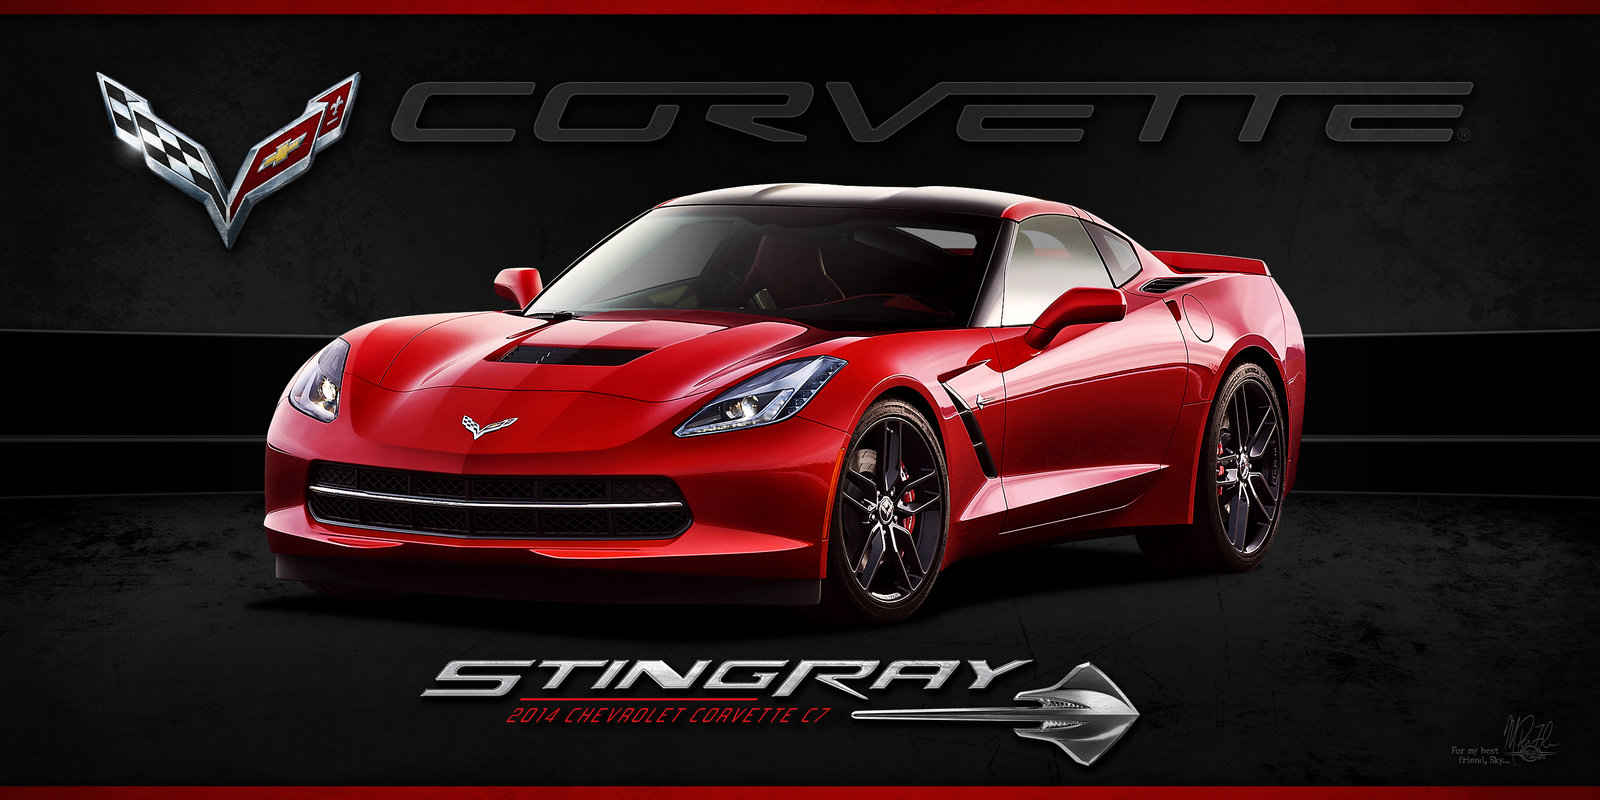 2014 Corvette Stingray Wallpaper picture size 1600x800 posted by 1600x800